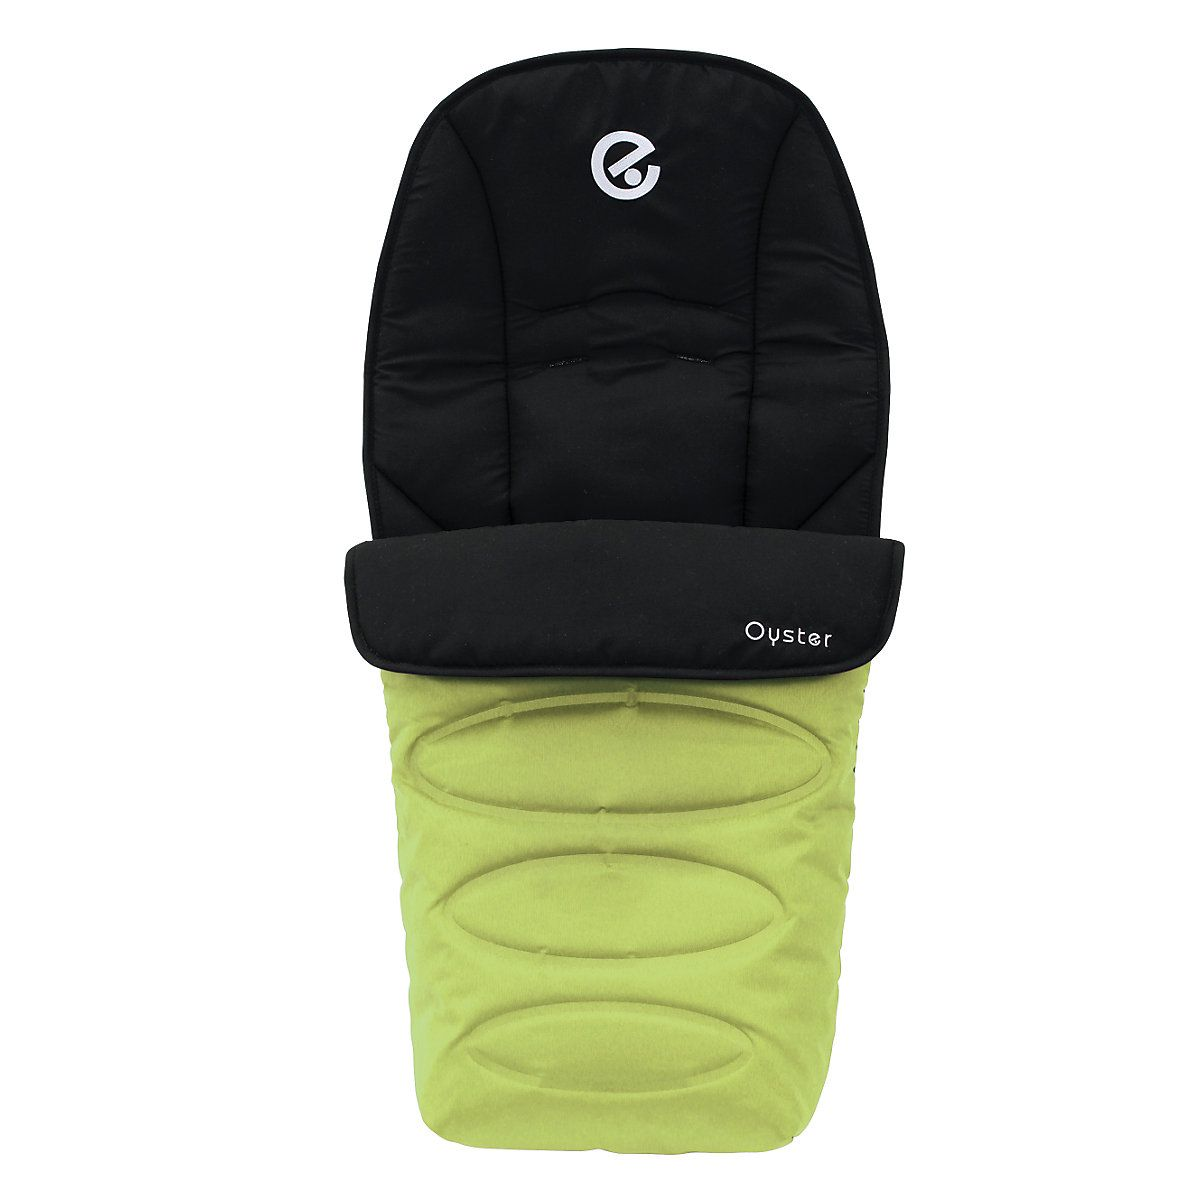 Babystyle Oyster Footmuff - Lime. A coordinating Oyster Footmuff, complimenting your stroller in the winter and summer as the zip off part can also be used as a seat liner. It has a magnetic panel to the front for extra coverage in the winter months and an elasticated strap across the back to hold the footmuff in place at the footrest.